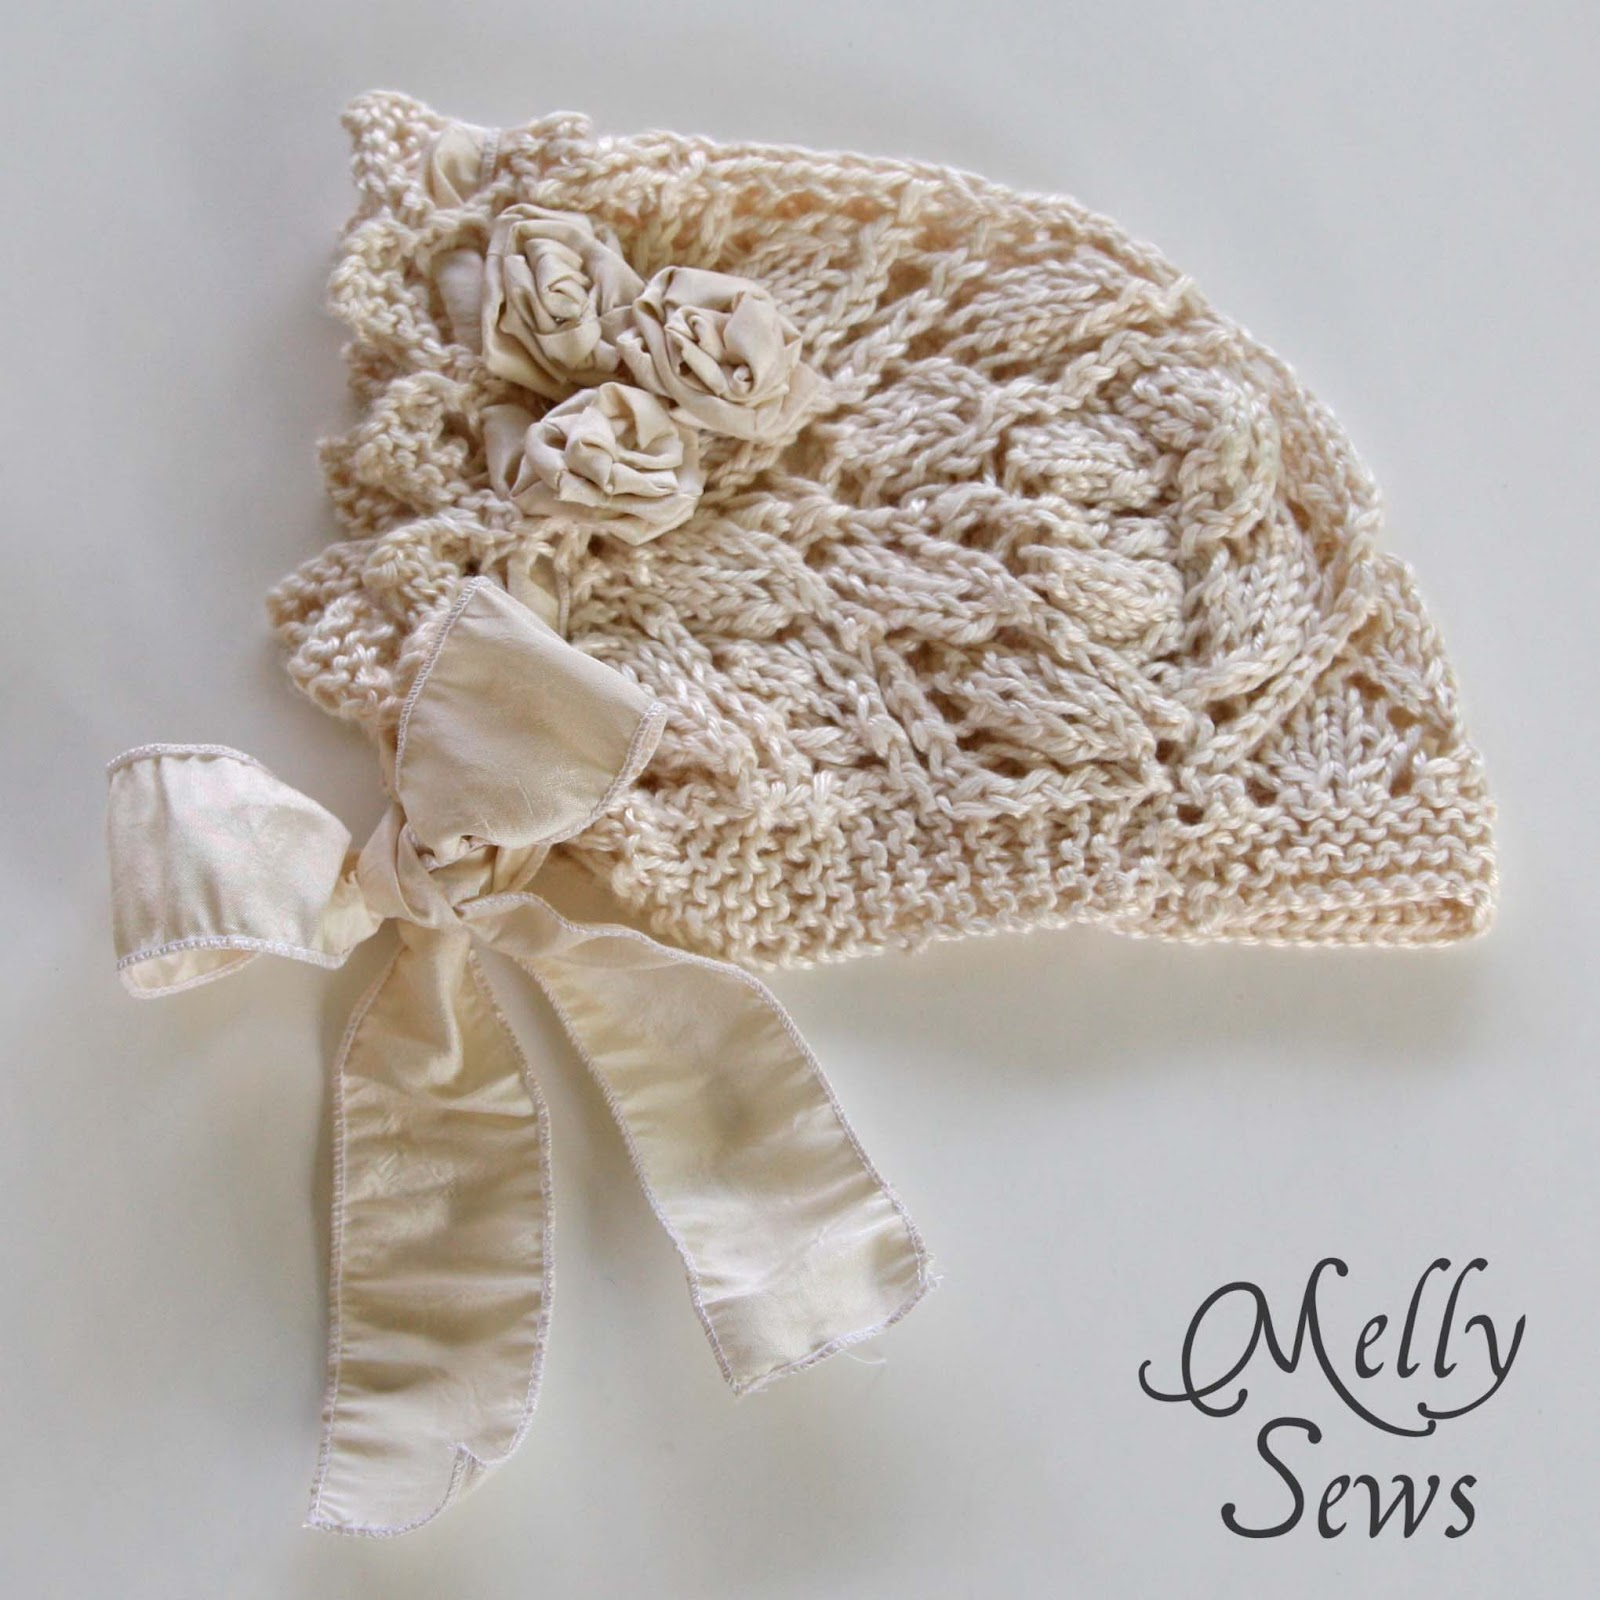 Knitting Needles Case Pattern : Lace Knit Baby Bonnet - Free pattern - Melly Sews